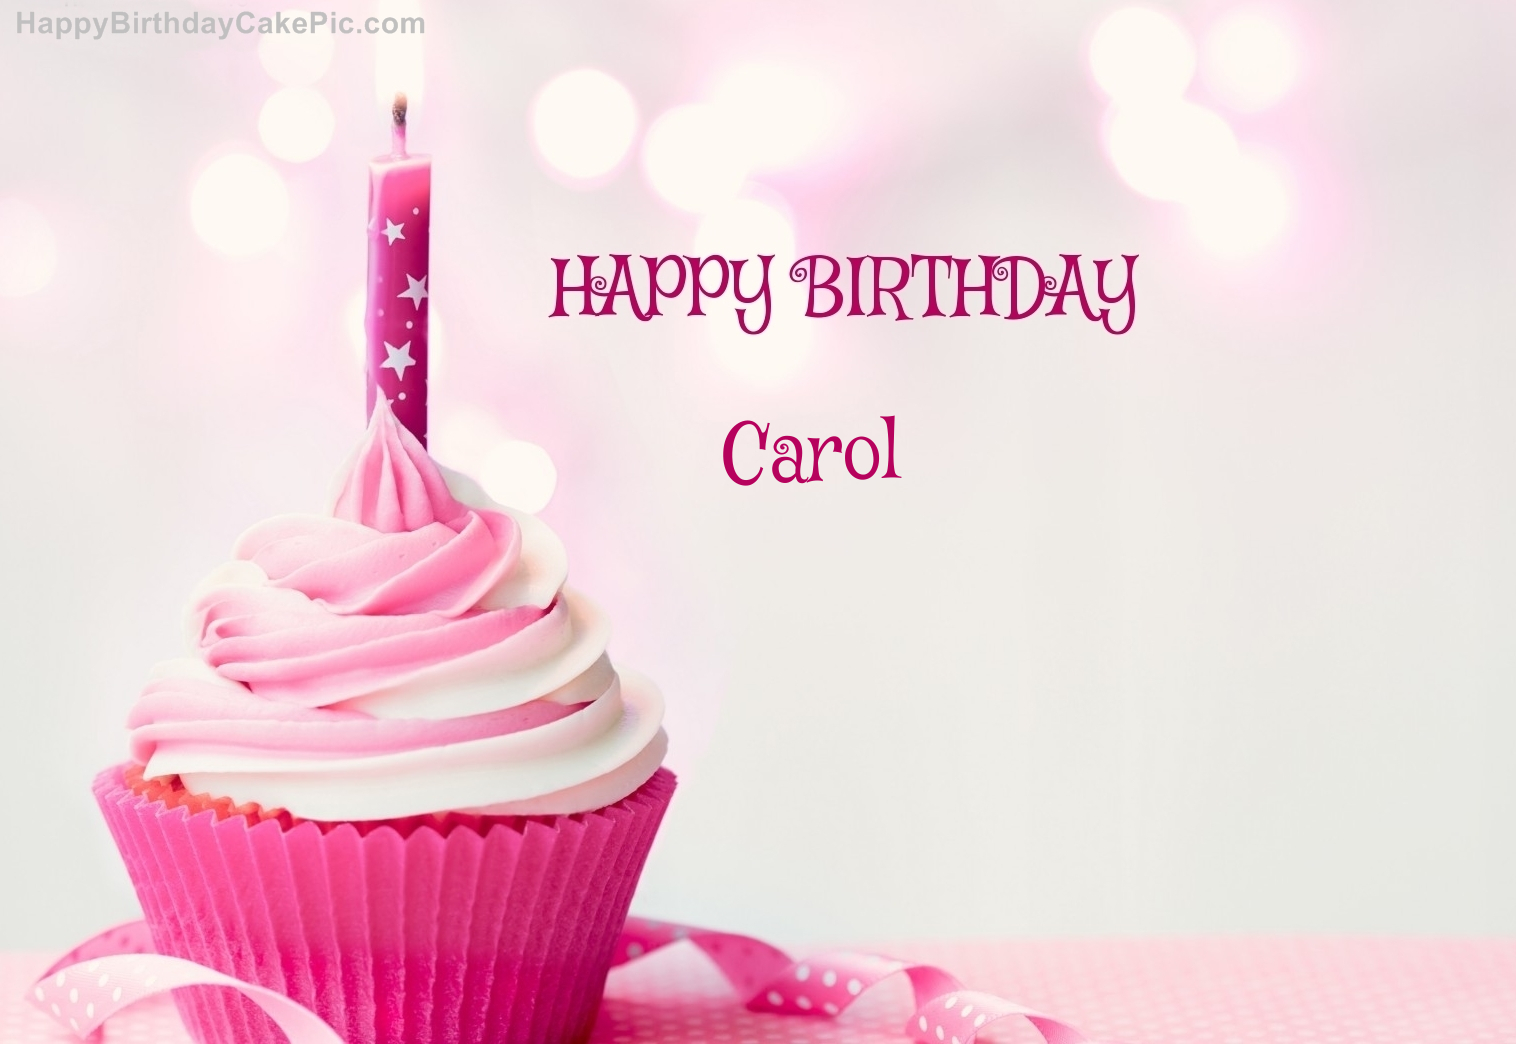 Happy Birthday Cupcake Candle Pink Cake For Carol